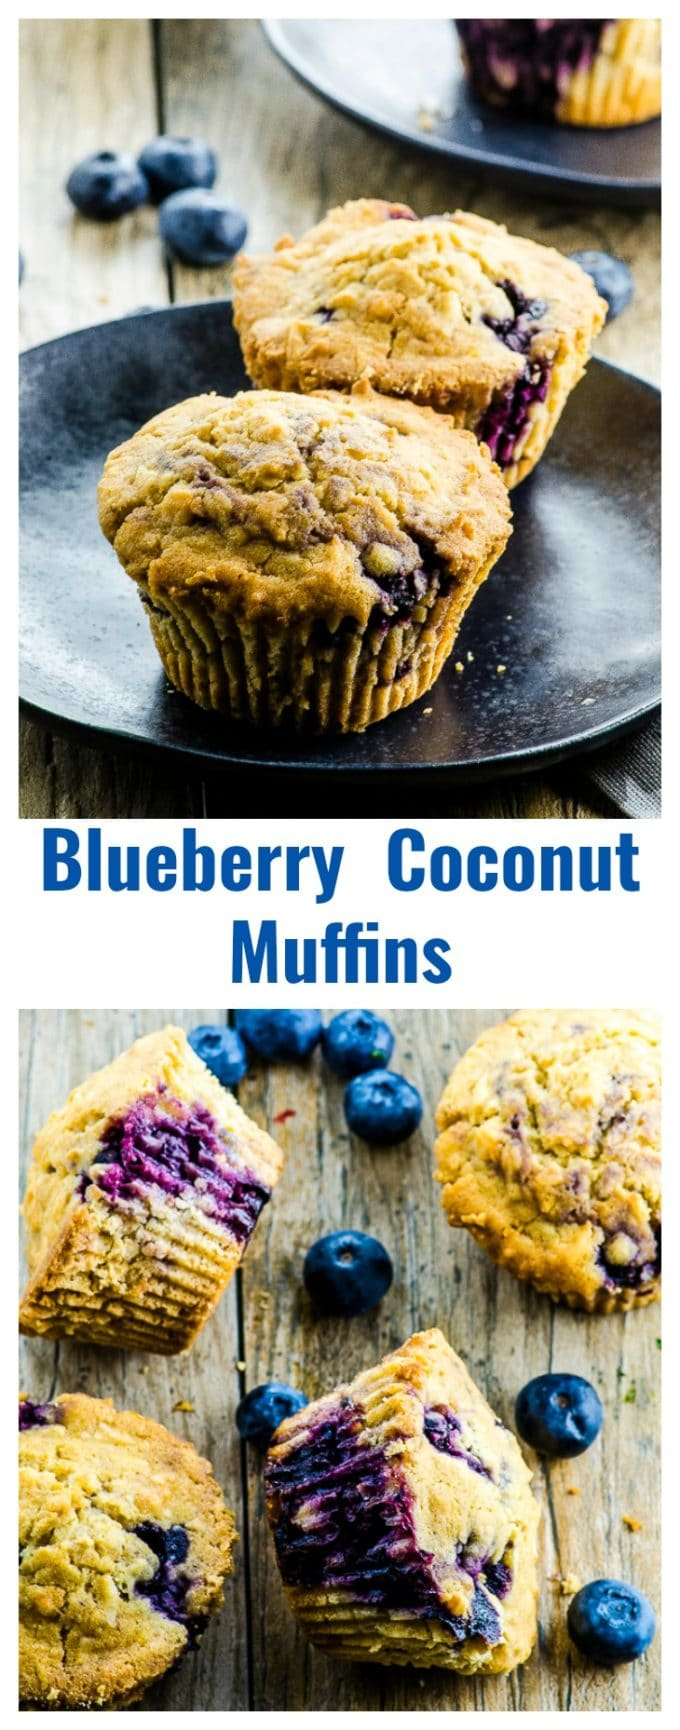 If you like those gigantic coffee shop muffins, you're gonna love these Vegan Coconut Blueberry Muffins! Lighter, satisfying and made with clean ingredients (and much smaller, too!)